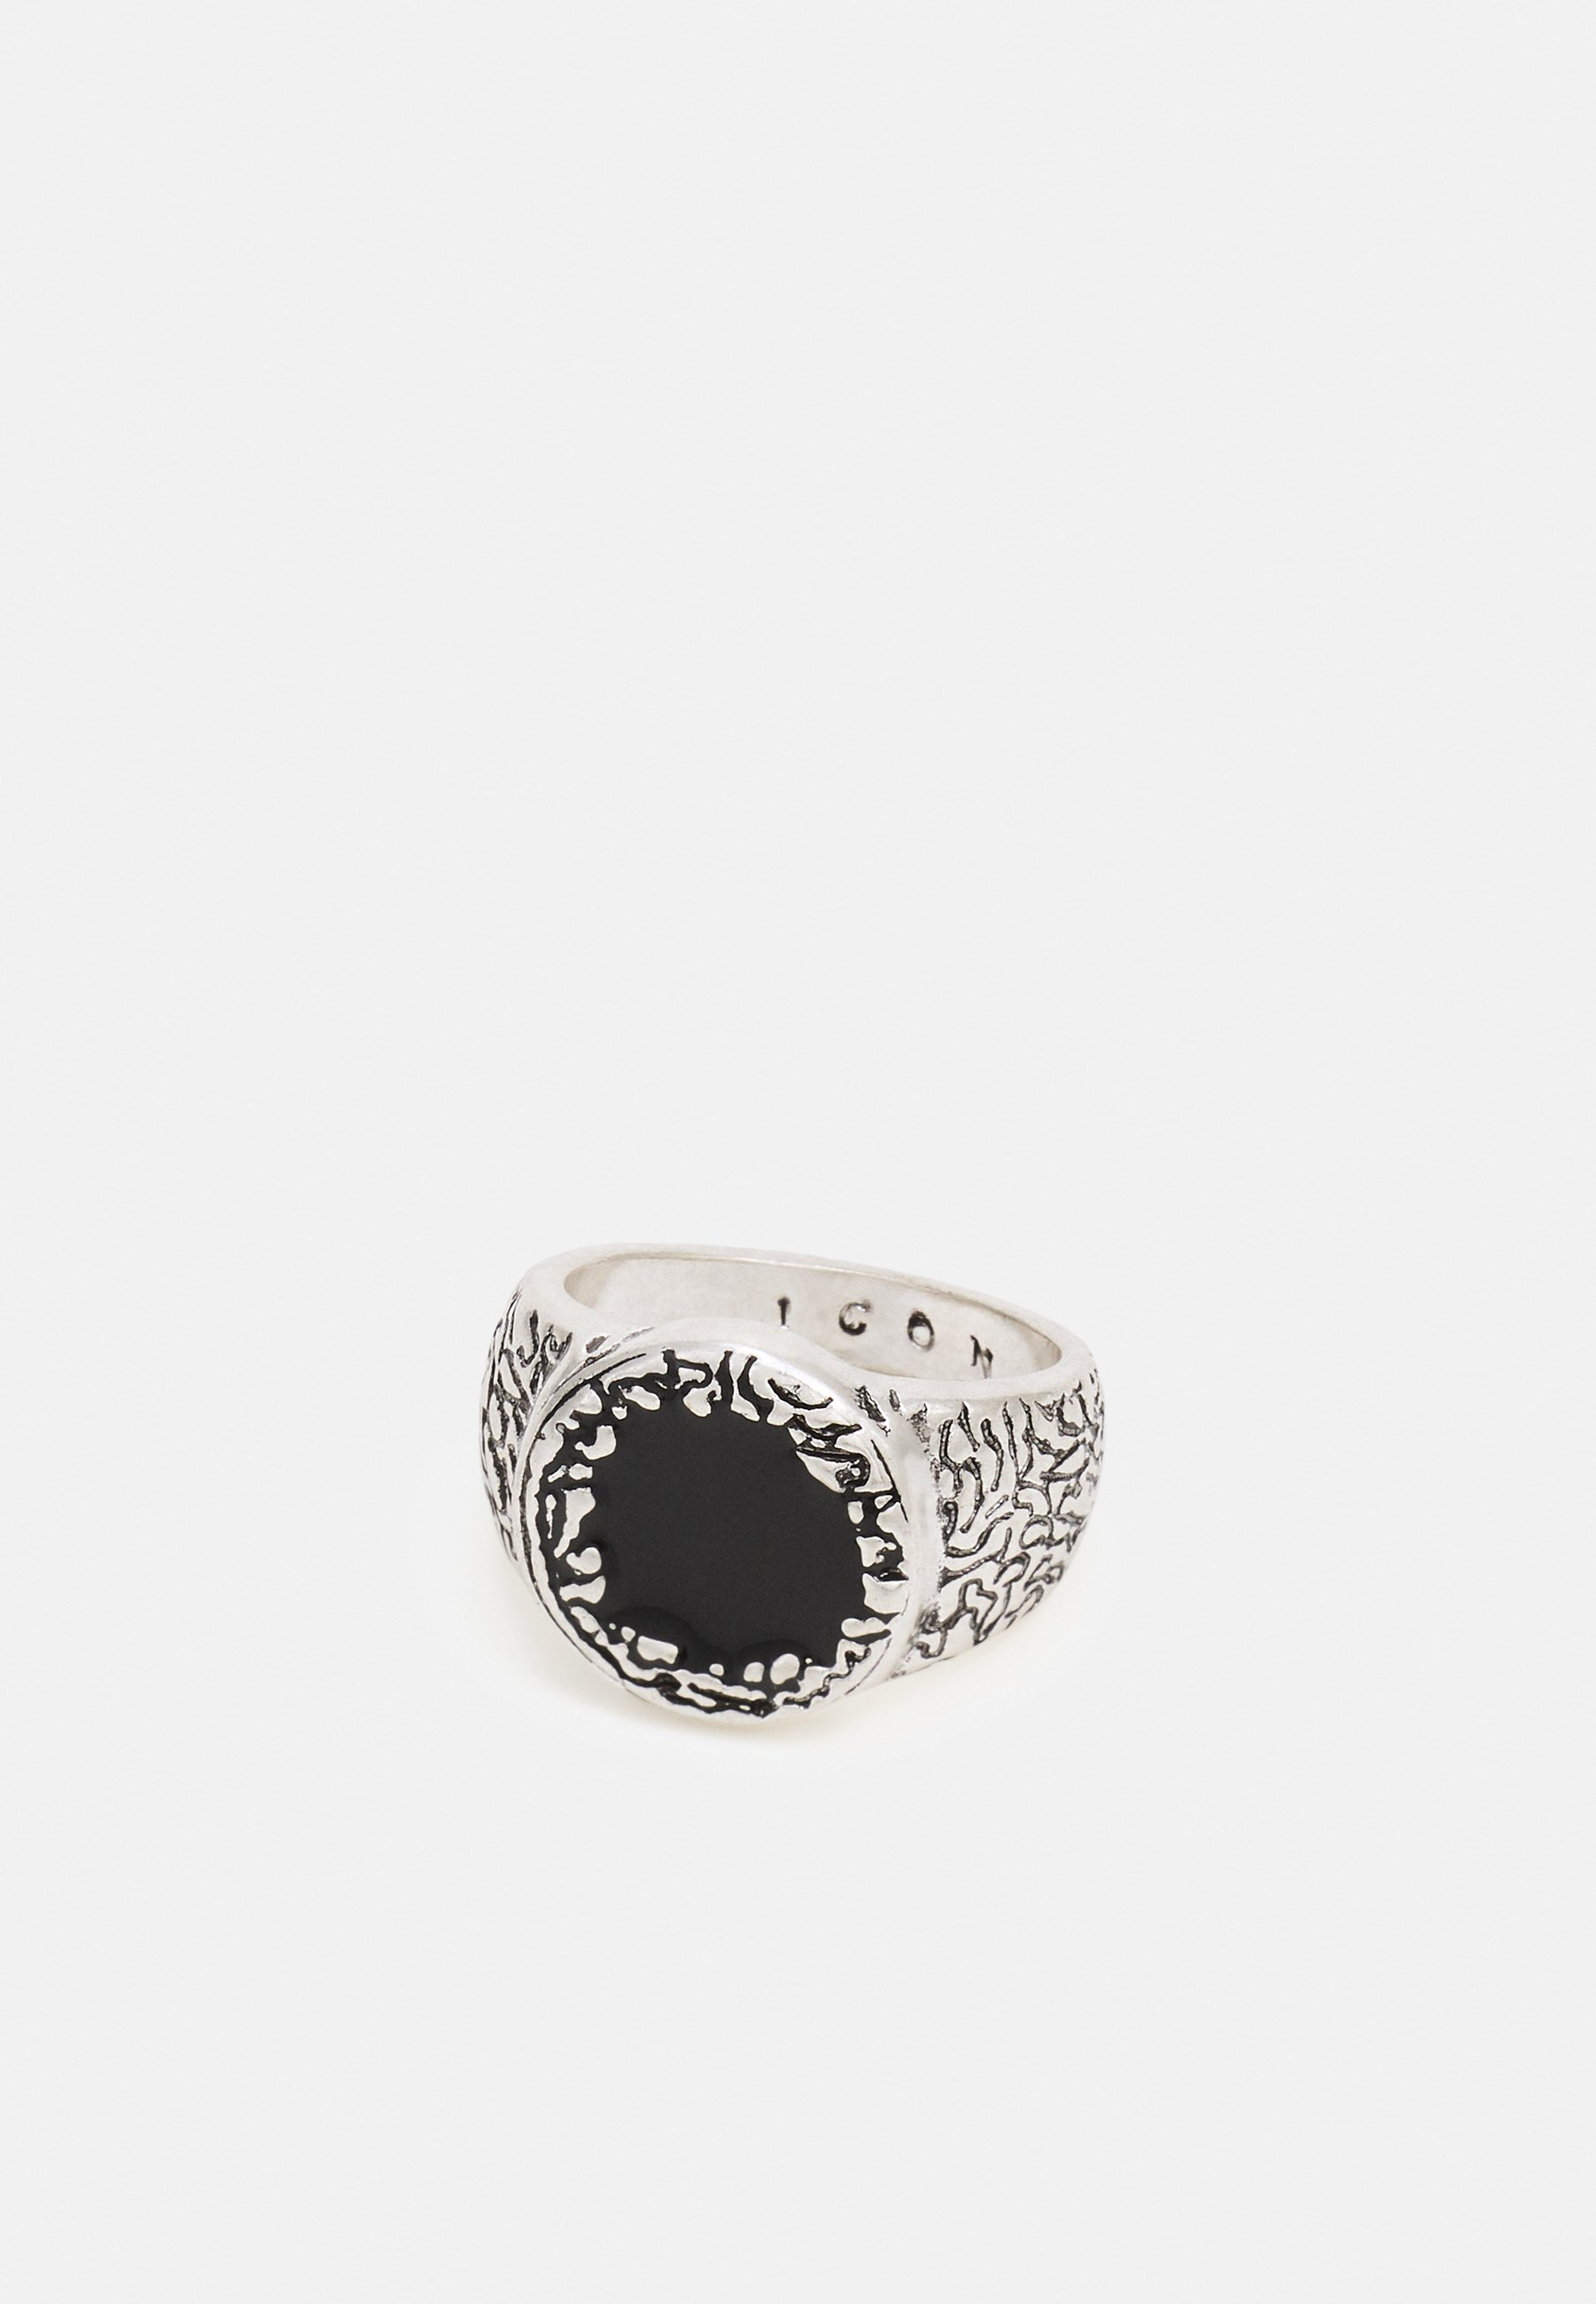 Homme COLLECTIVE CONSCIENCE TEXTURED - Bague